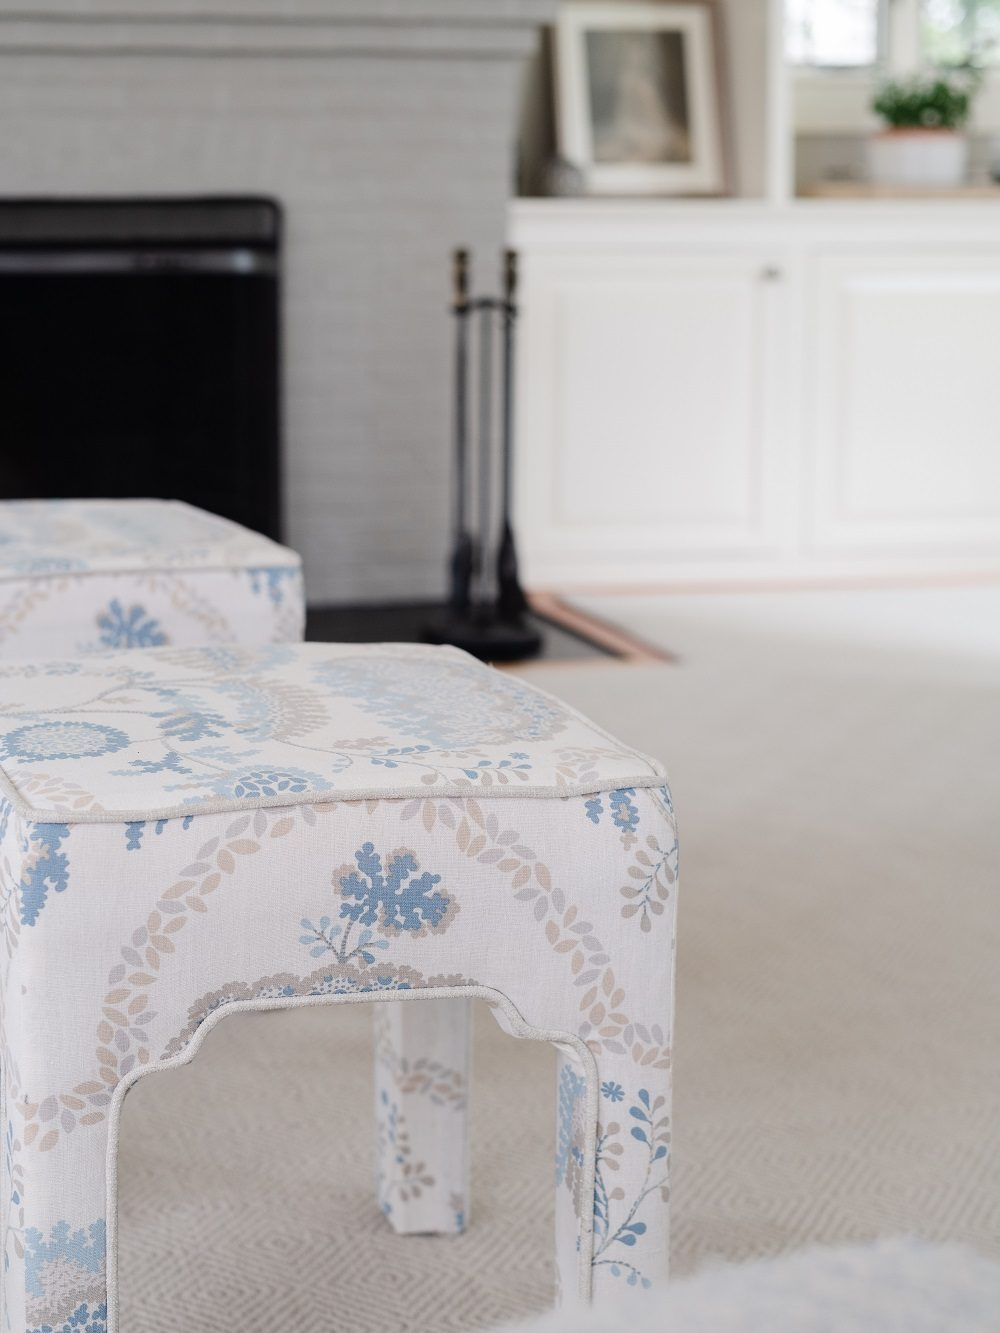 Detail of custom upholstered footstools with blue patterned fabric